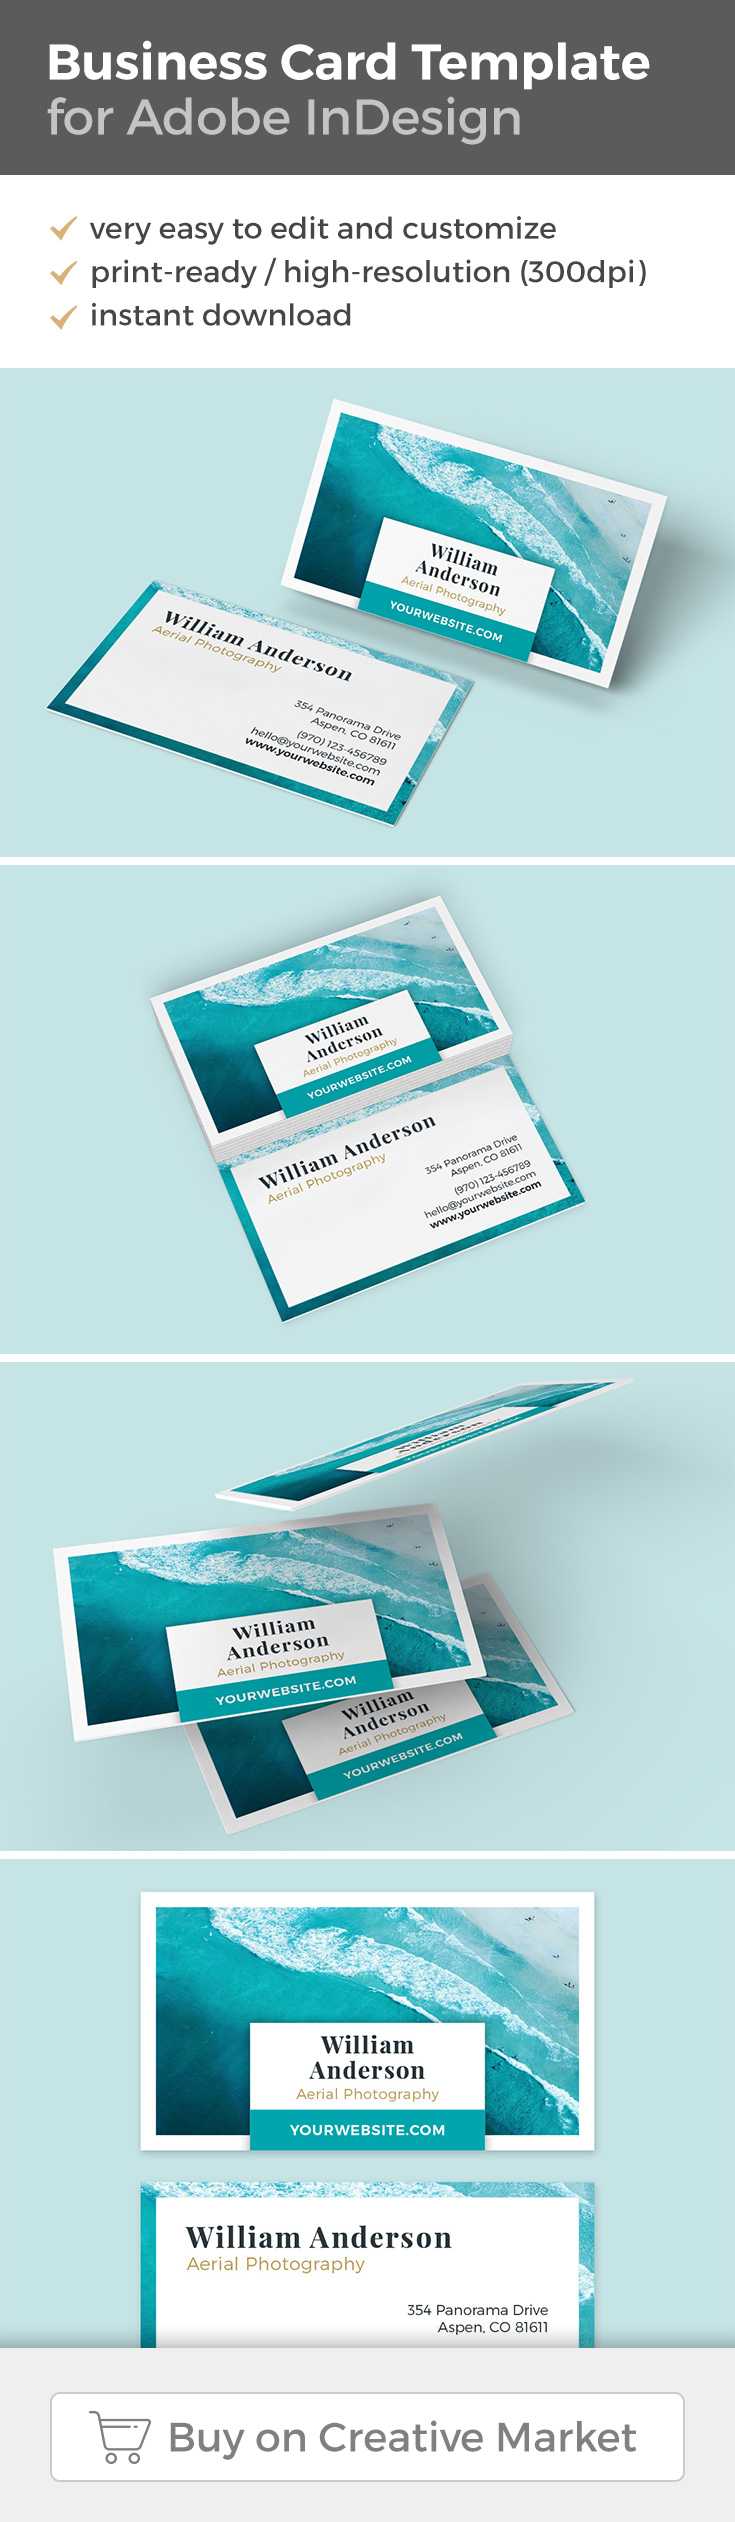 Beautiful business card template for adobe indesign with an ocean beautiful business card template for adobe indesign with an ocean theme friedricerecipe